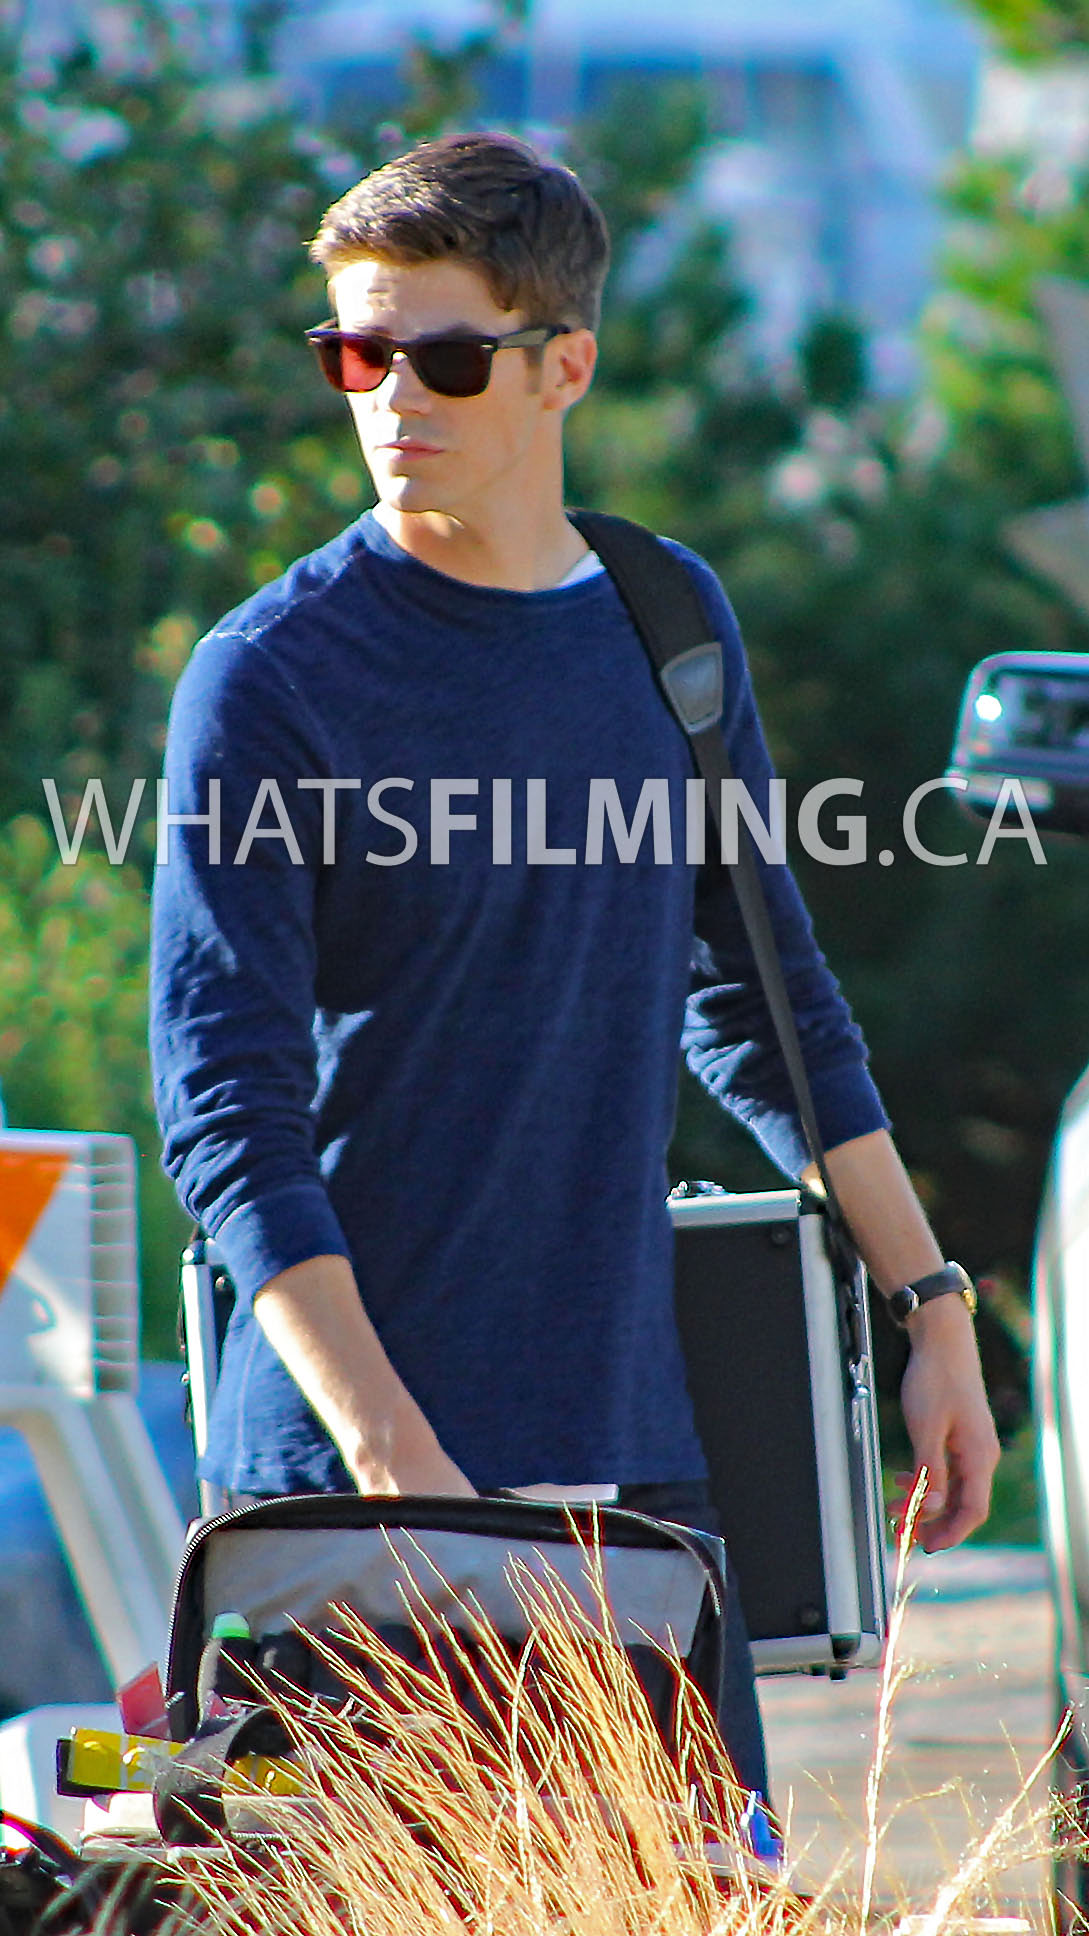 Grant Gustin as Barry Allen filming The Flash Season 3 Episode 2 in Vancouver